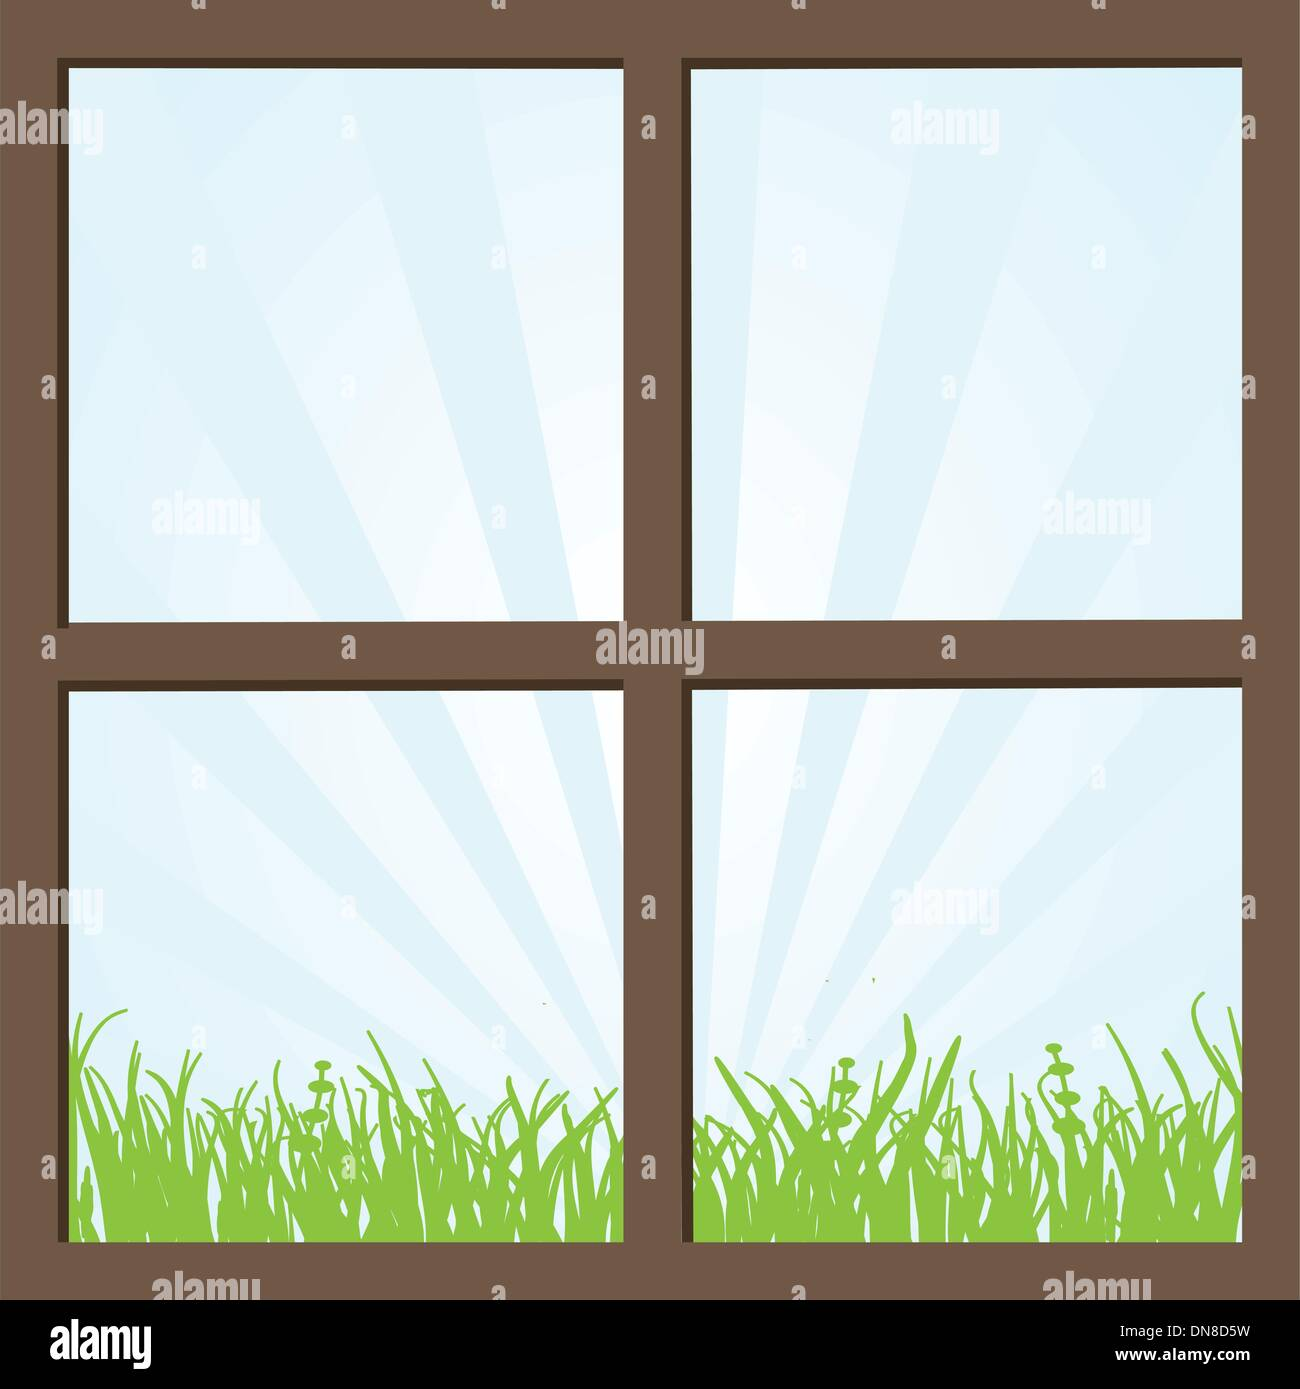 Summer field and mountains seen through the window. - Stock Vector